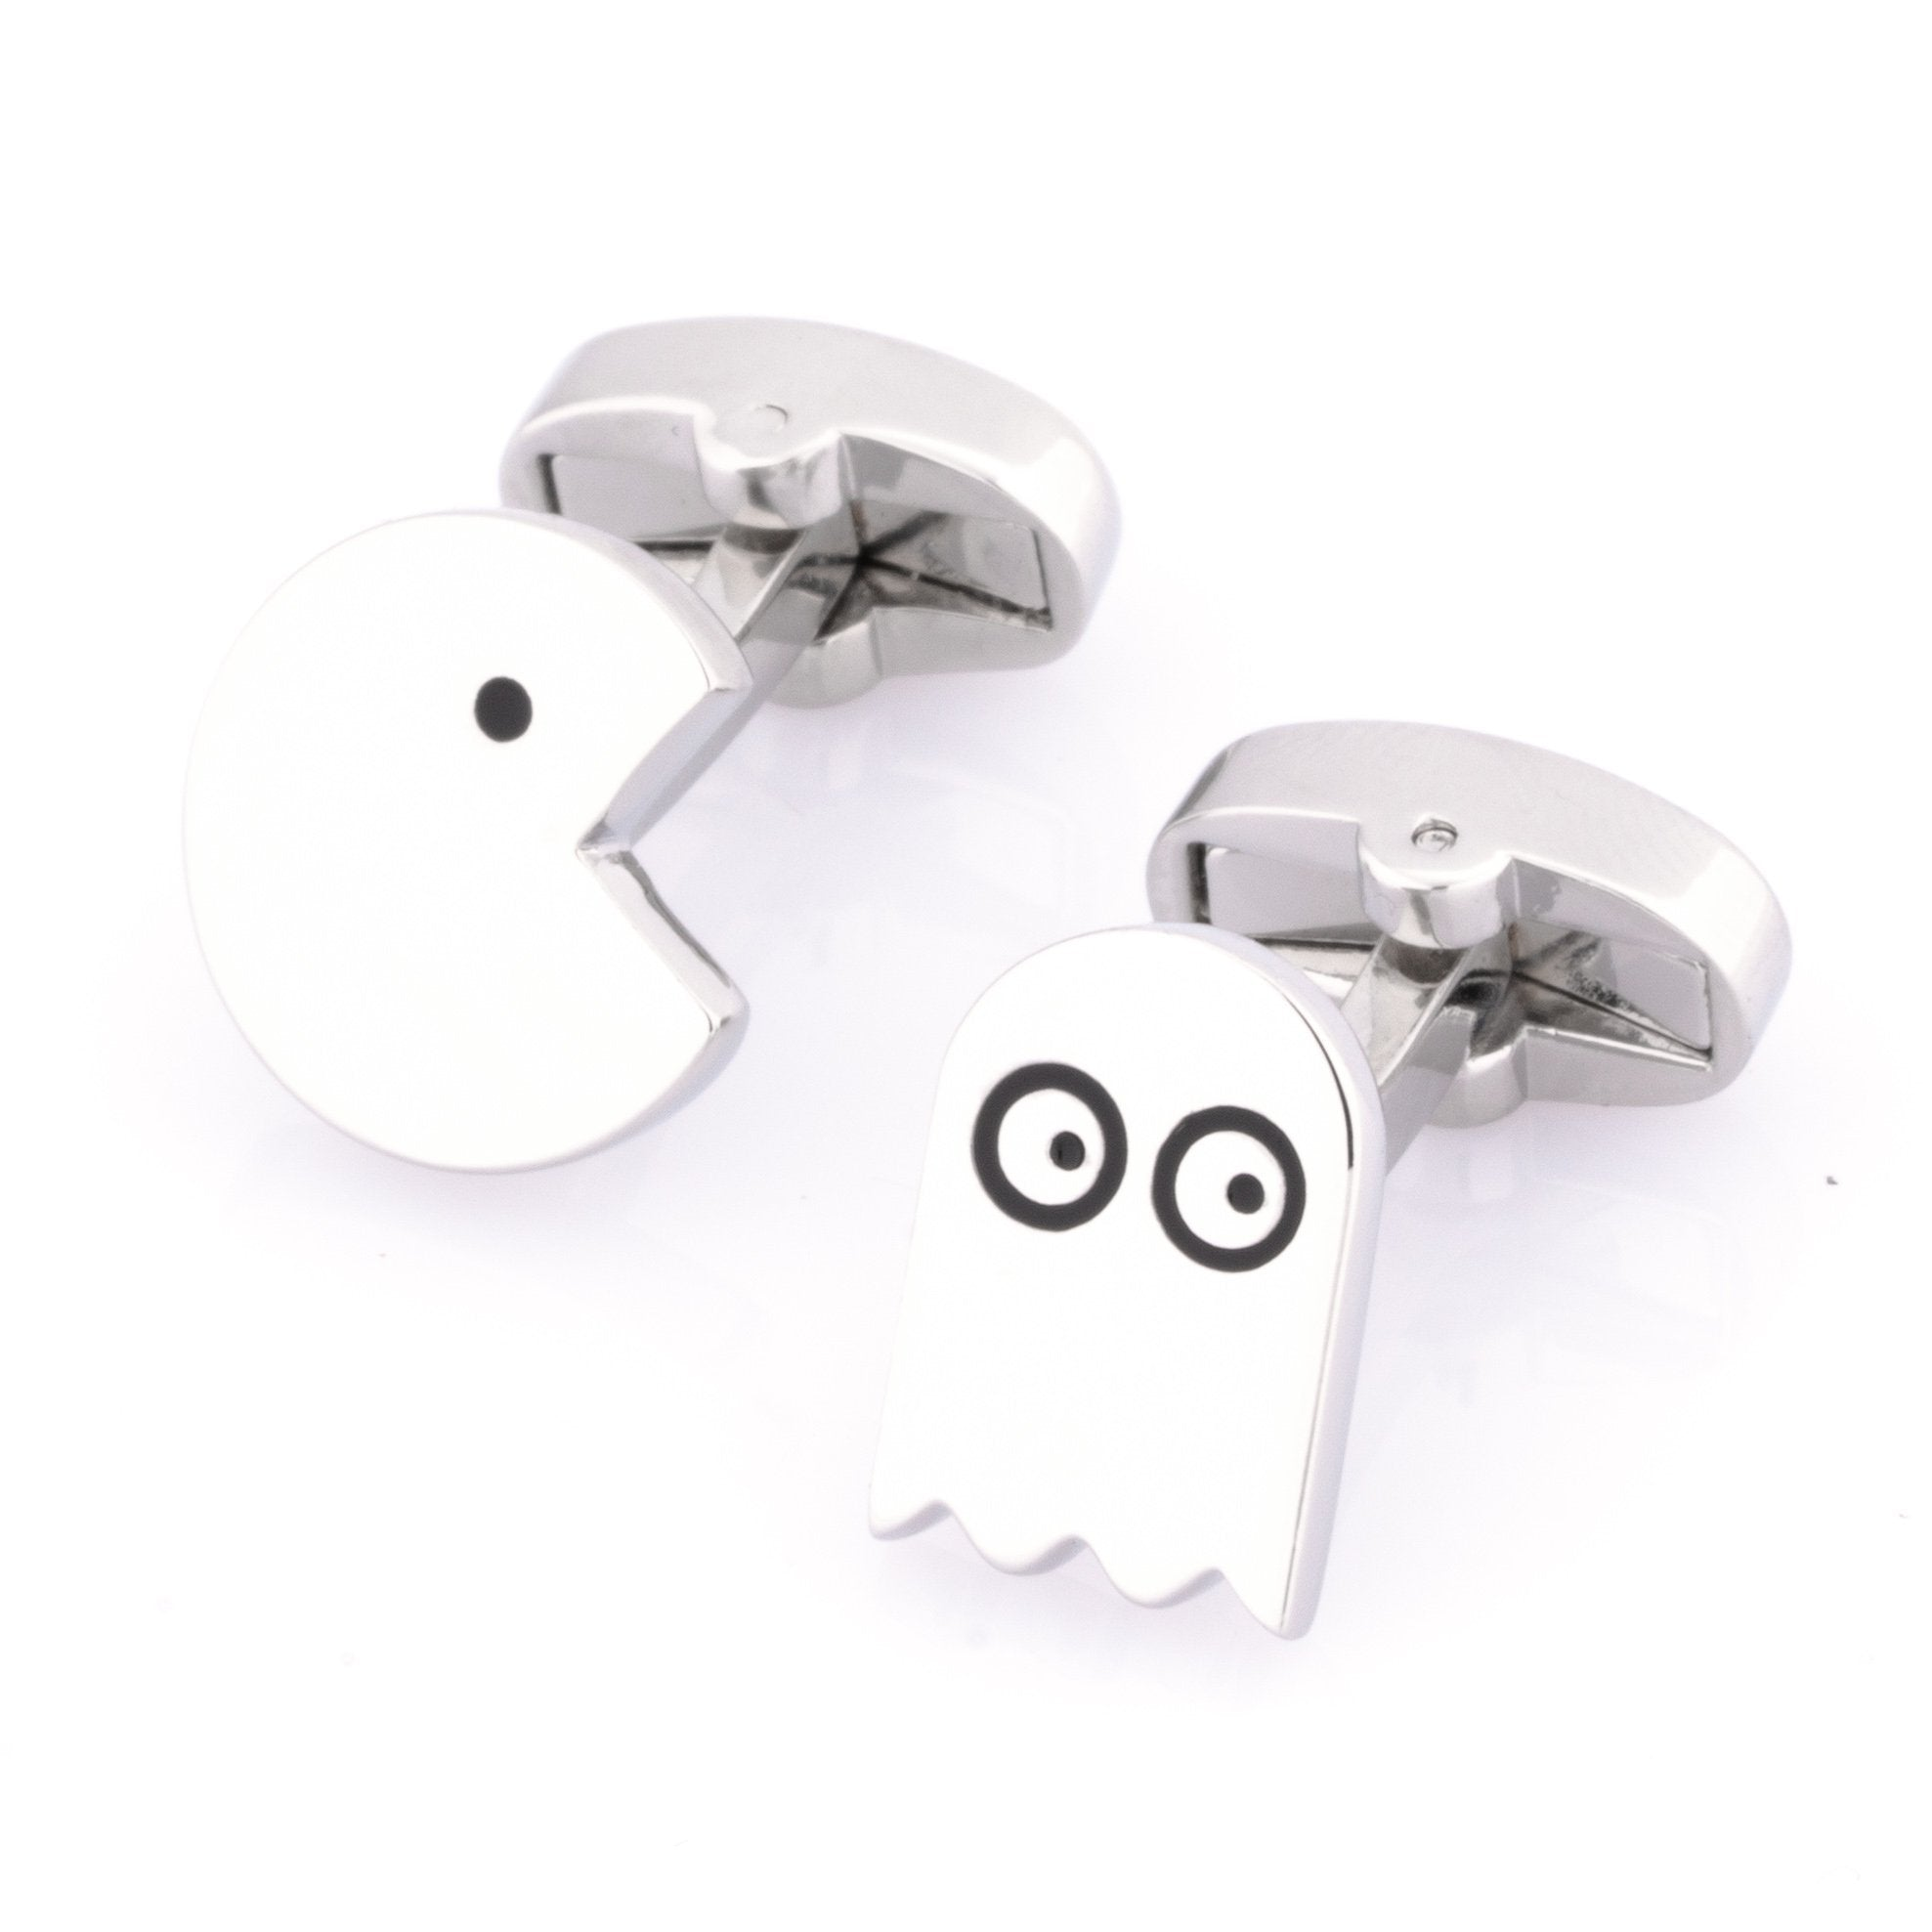 PacMan Cufflinks Silver, Novelty Cufflinks, Cuffed.com.au, CL9183, Games, Silver, Technology, Clinks Australia